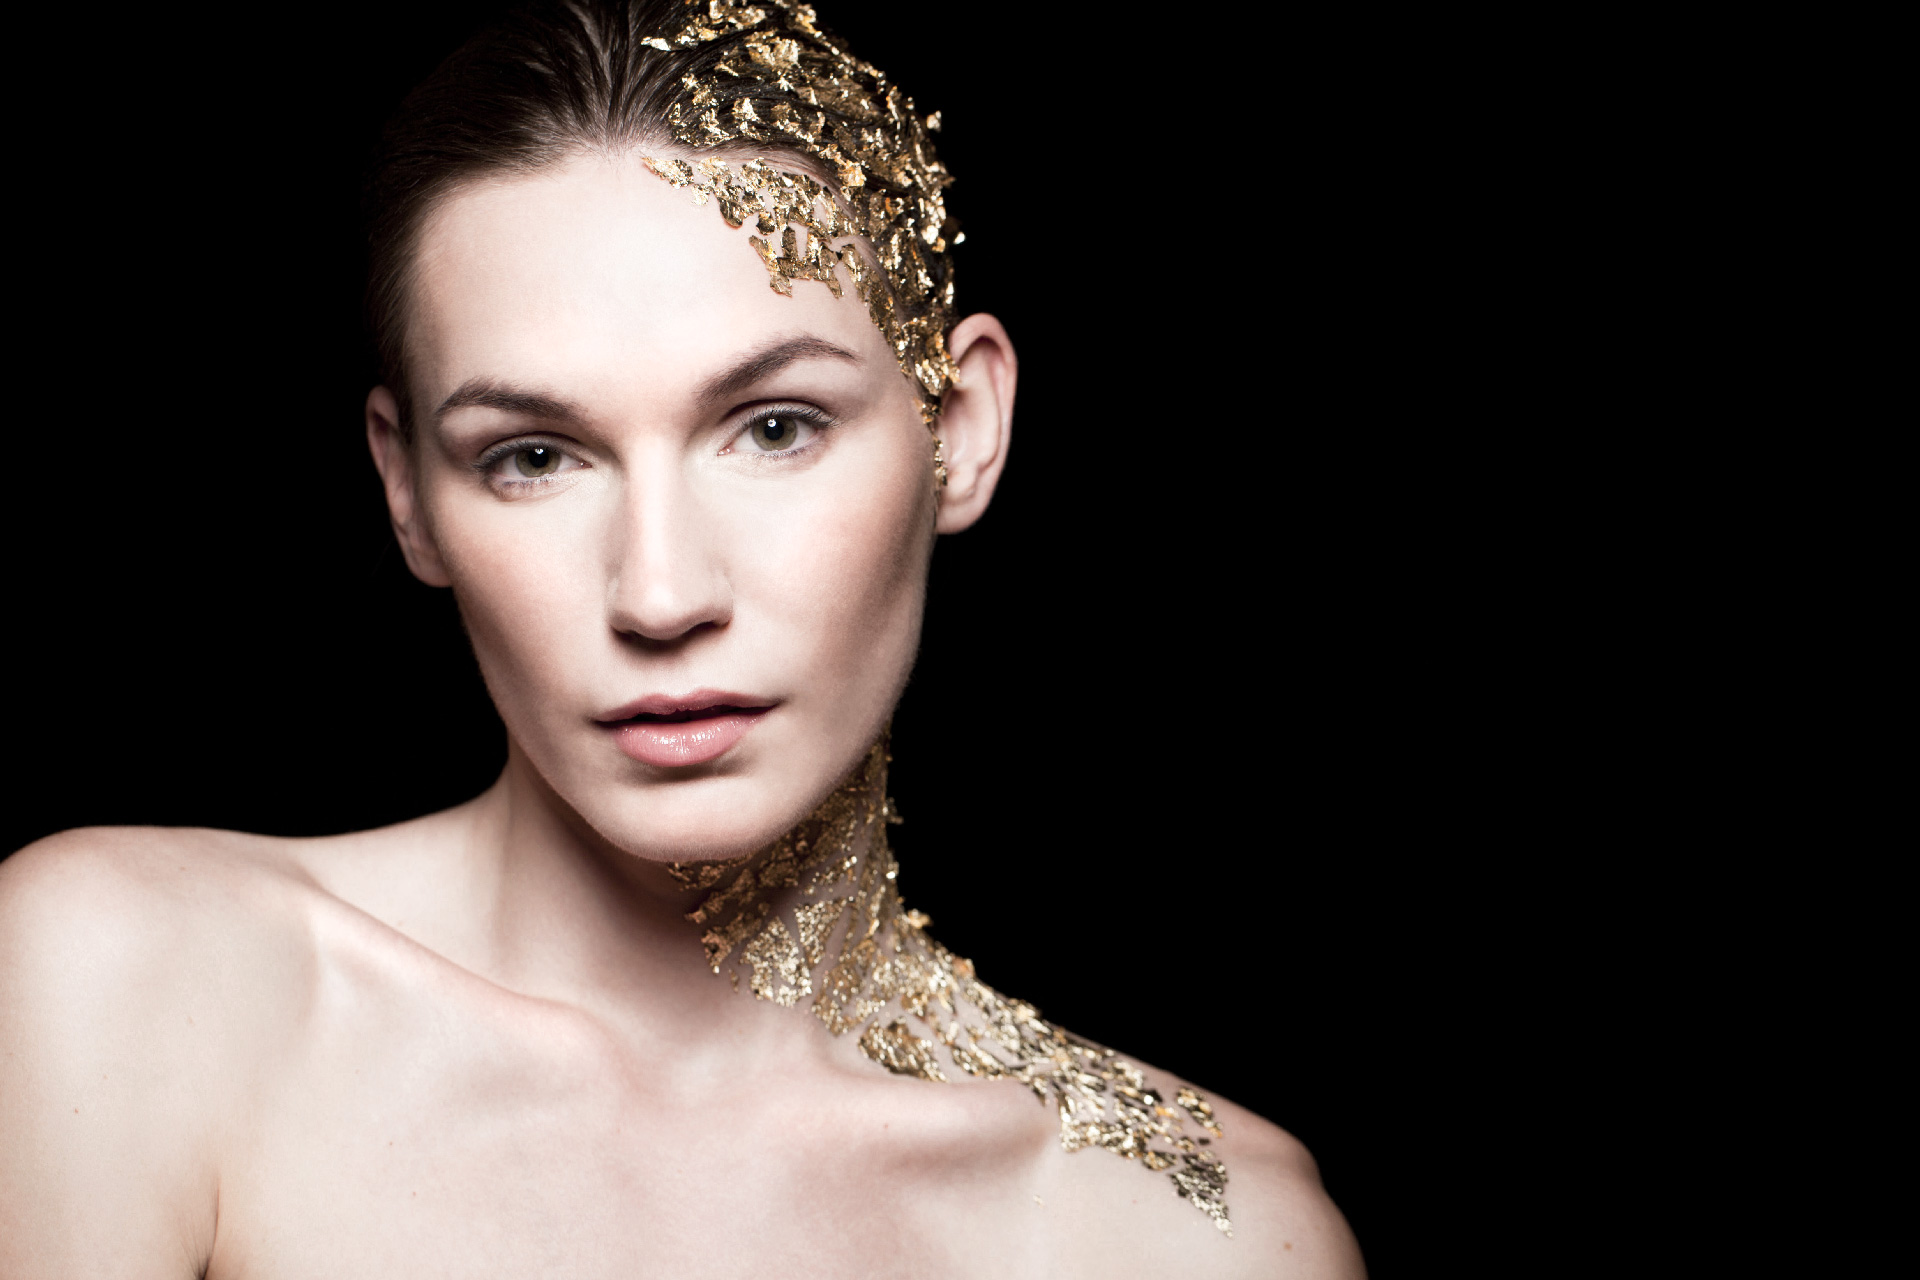 Photo: gold perfume ad image by beauty campaign photographer london Margaret Yescombe, MUA Hairstylist Dorota Nowacka, agency model Anna from Oxygen models, studio photo-shoot in Hackney, gold leaf make-up, strong lighting, beautiful, elegant, stylish